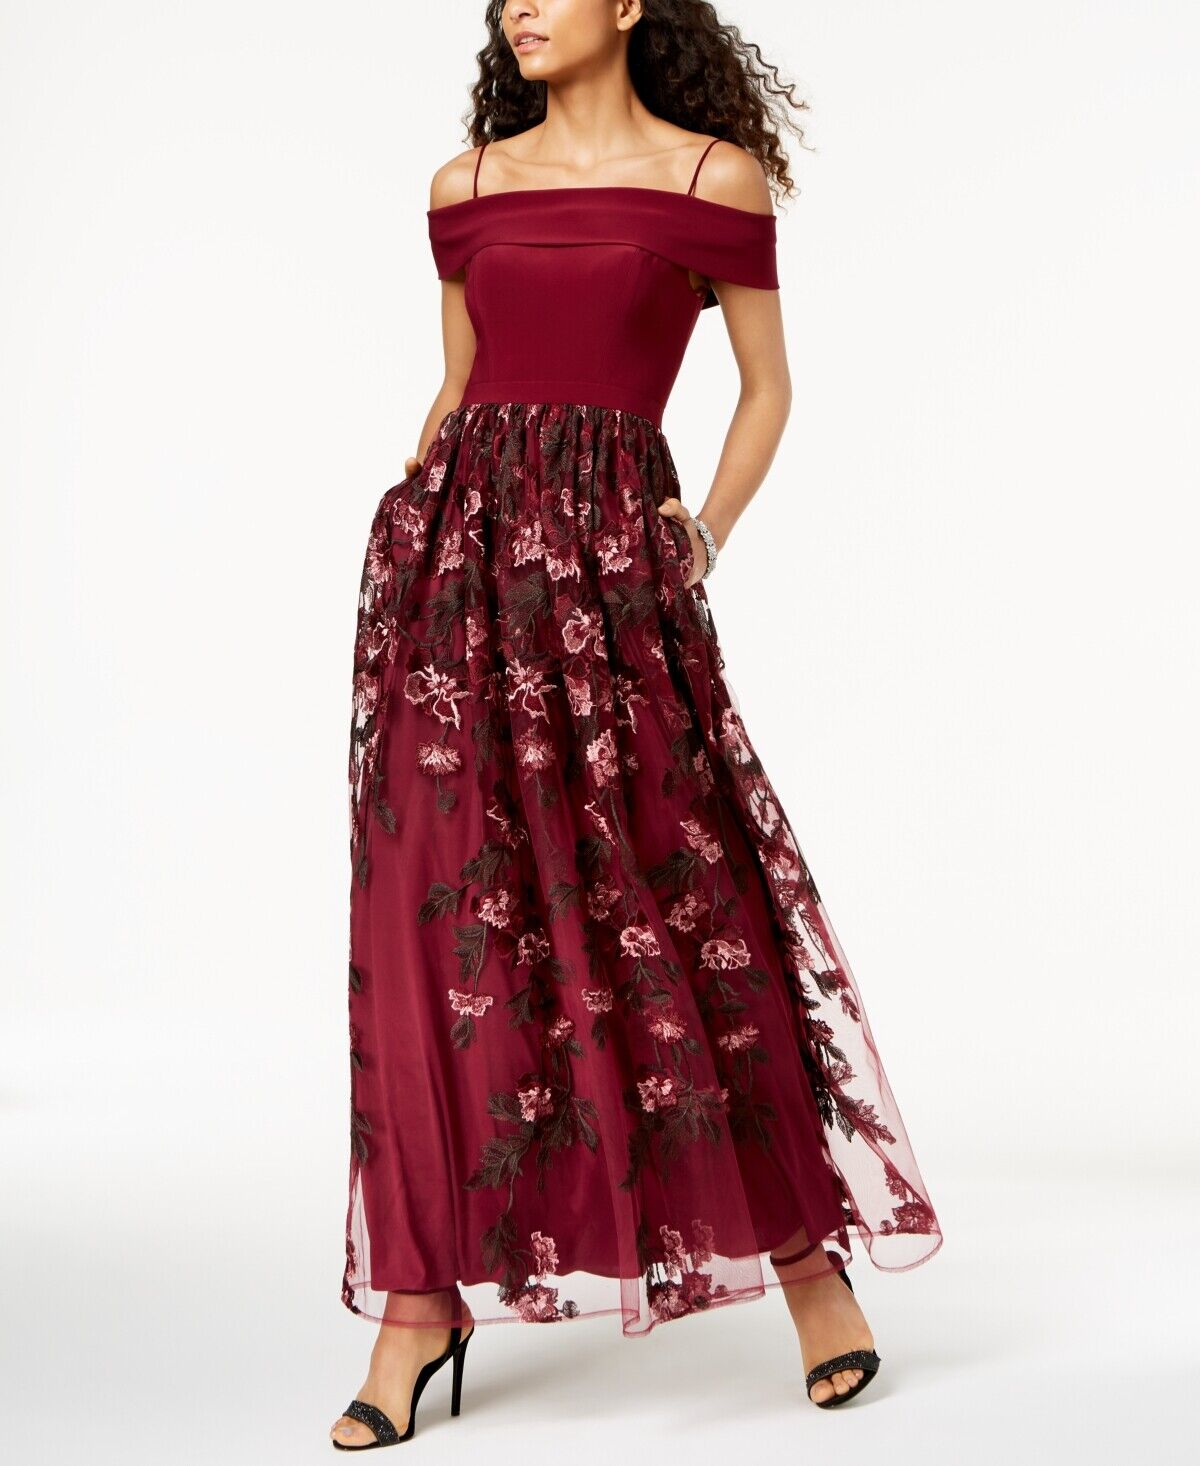 268 NIGHTWAY WOMEN'S RED EMBROIDERED OFF-THE-SHOULDER GOWN FORMAL DRESS SIZE 10